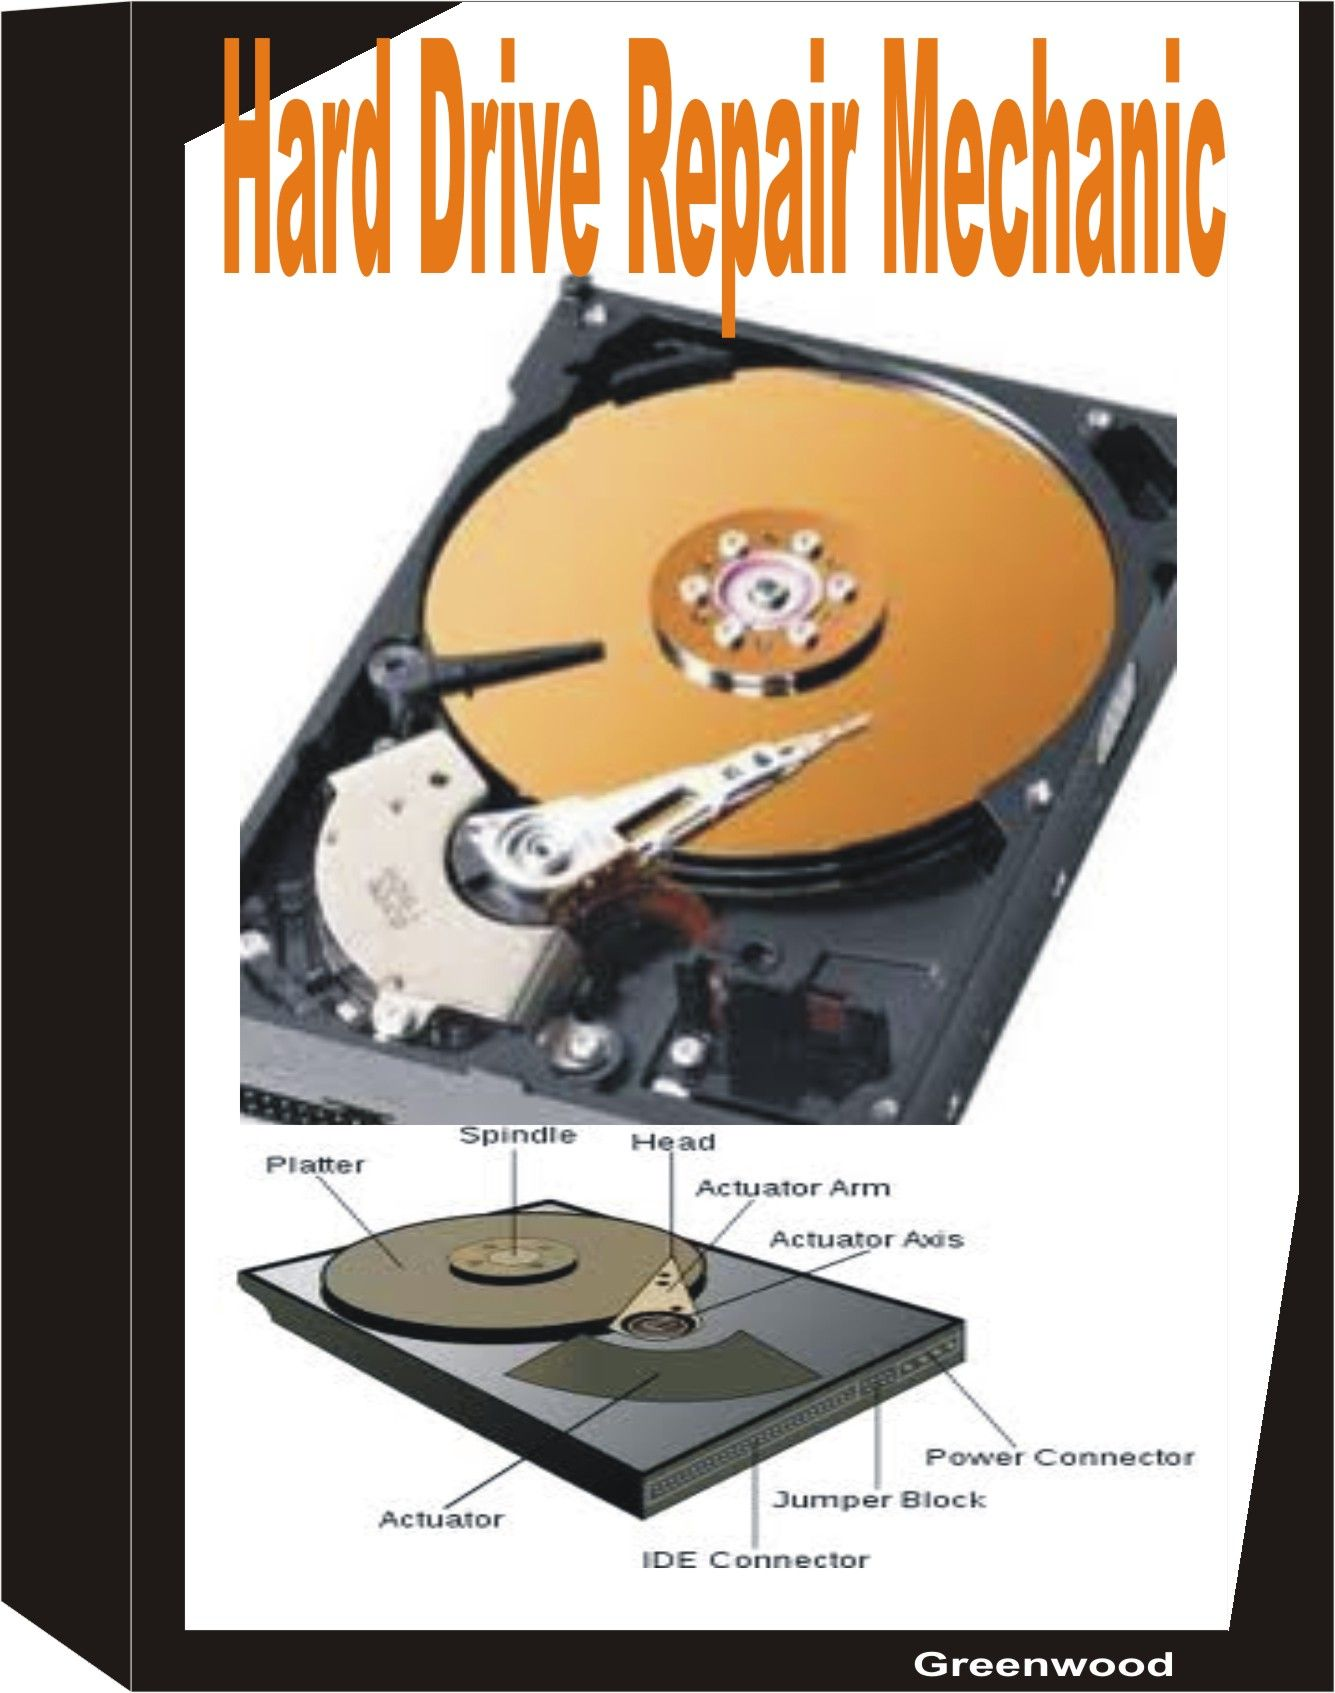 Laptop Repair Training - Notebook Repair, Motherboard Repair, Hardware  Training, Hardware Academy,